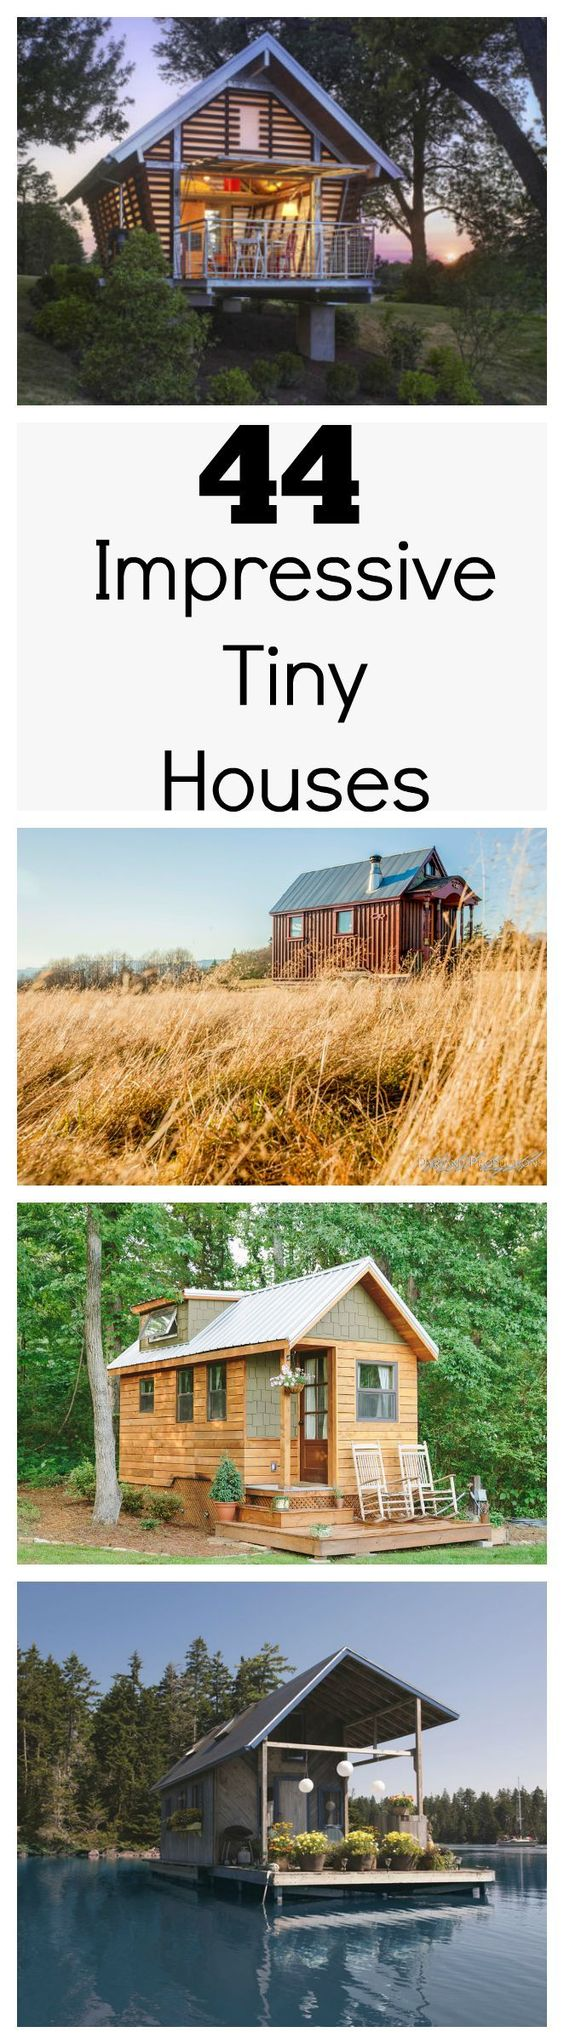 Tiny houses are popping up around the country as more people decide to downsize their lives. However, owning a tiny house doesn't necessarily mean making sacrifices, and these amazing tiny houses are proof.